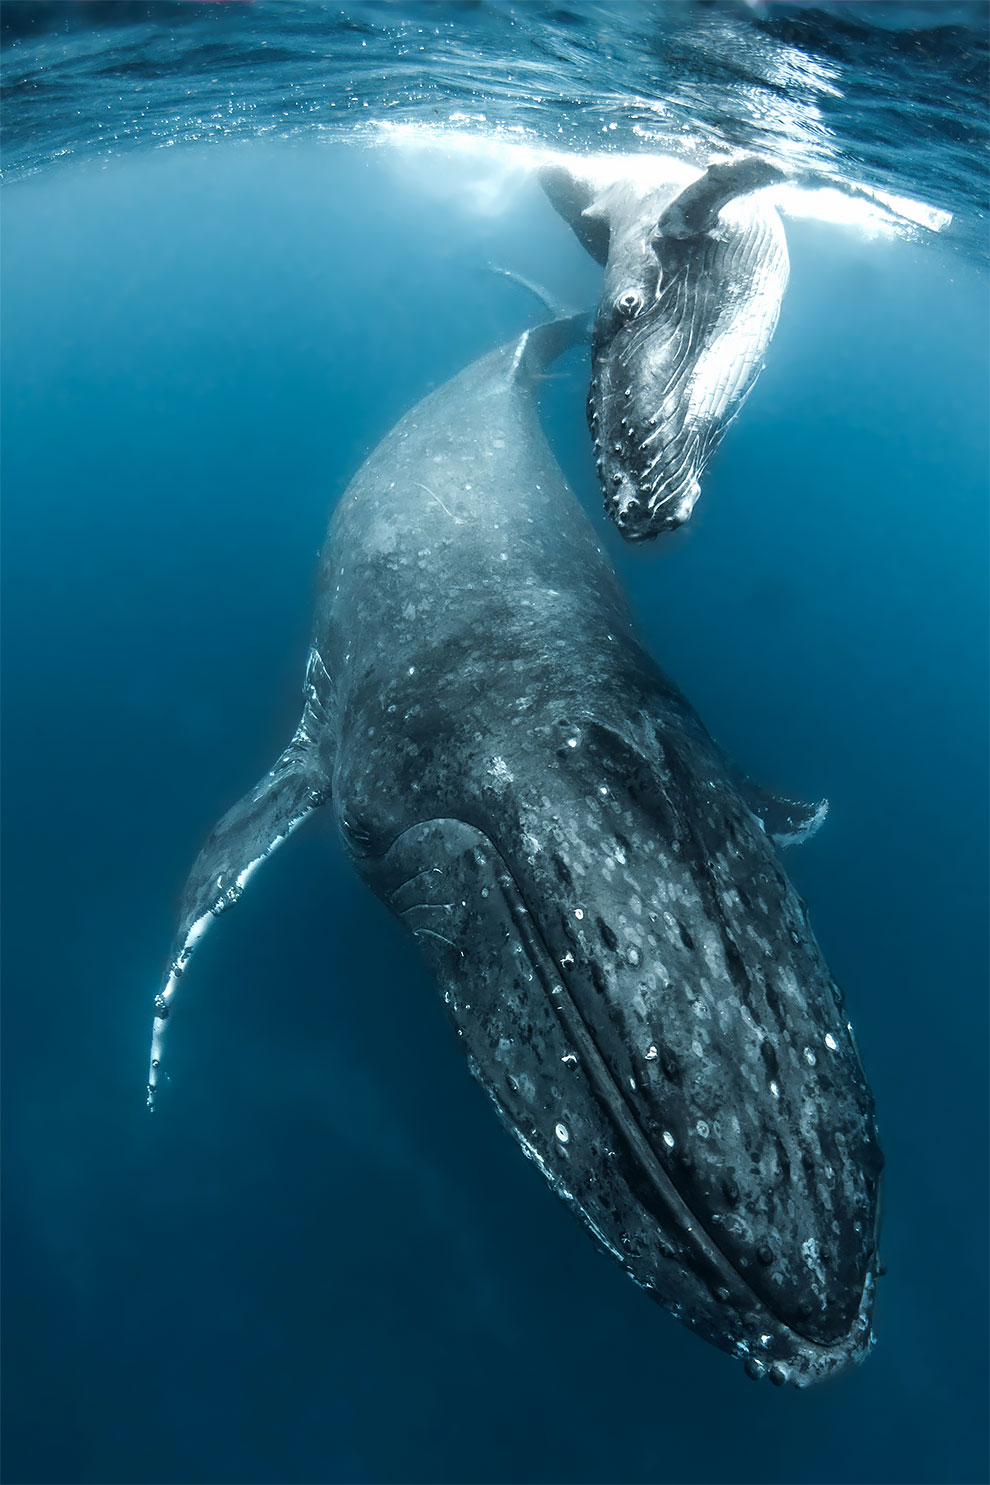 Daredevil Underwater Photographer Captures Stunning Images Of Humpback Whales In The South Pacific Underwater Photographer Whale Humpback Whale